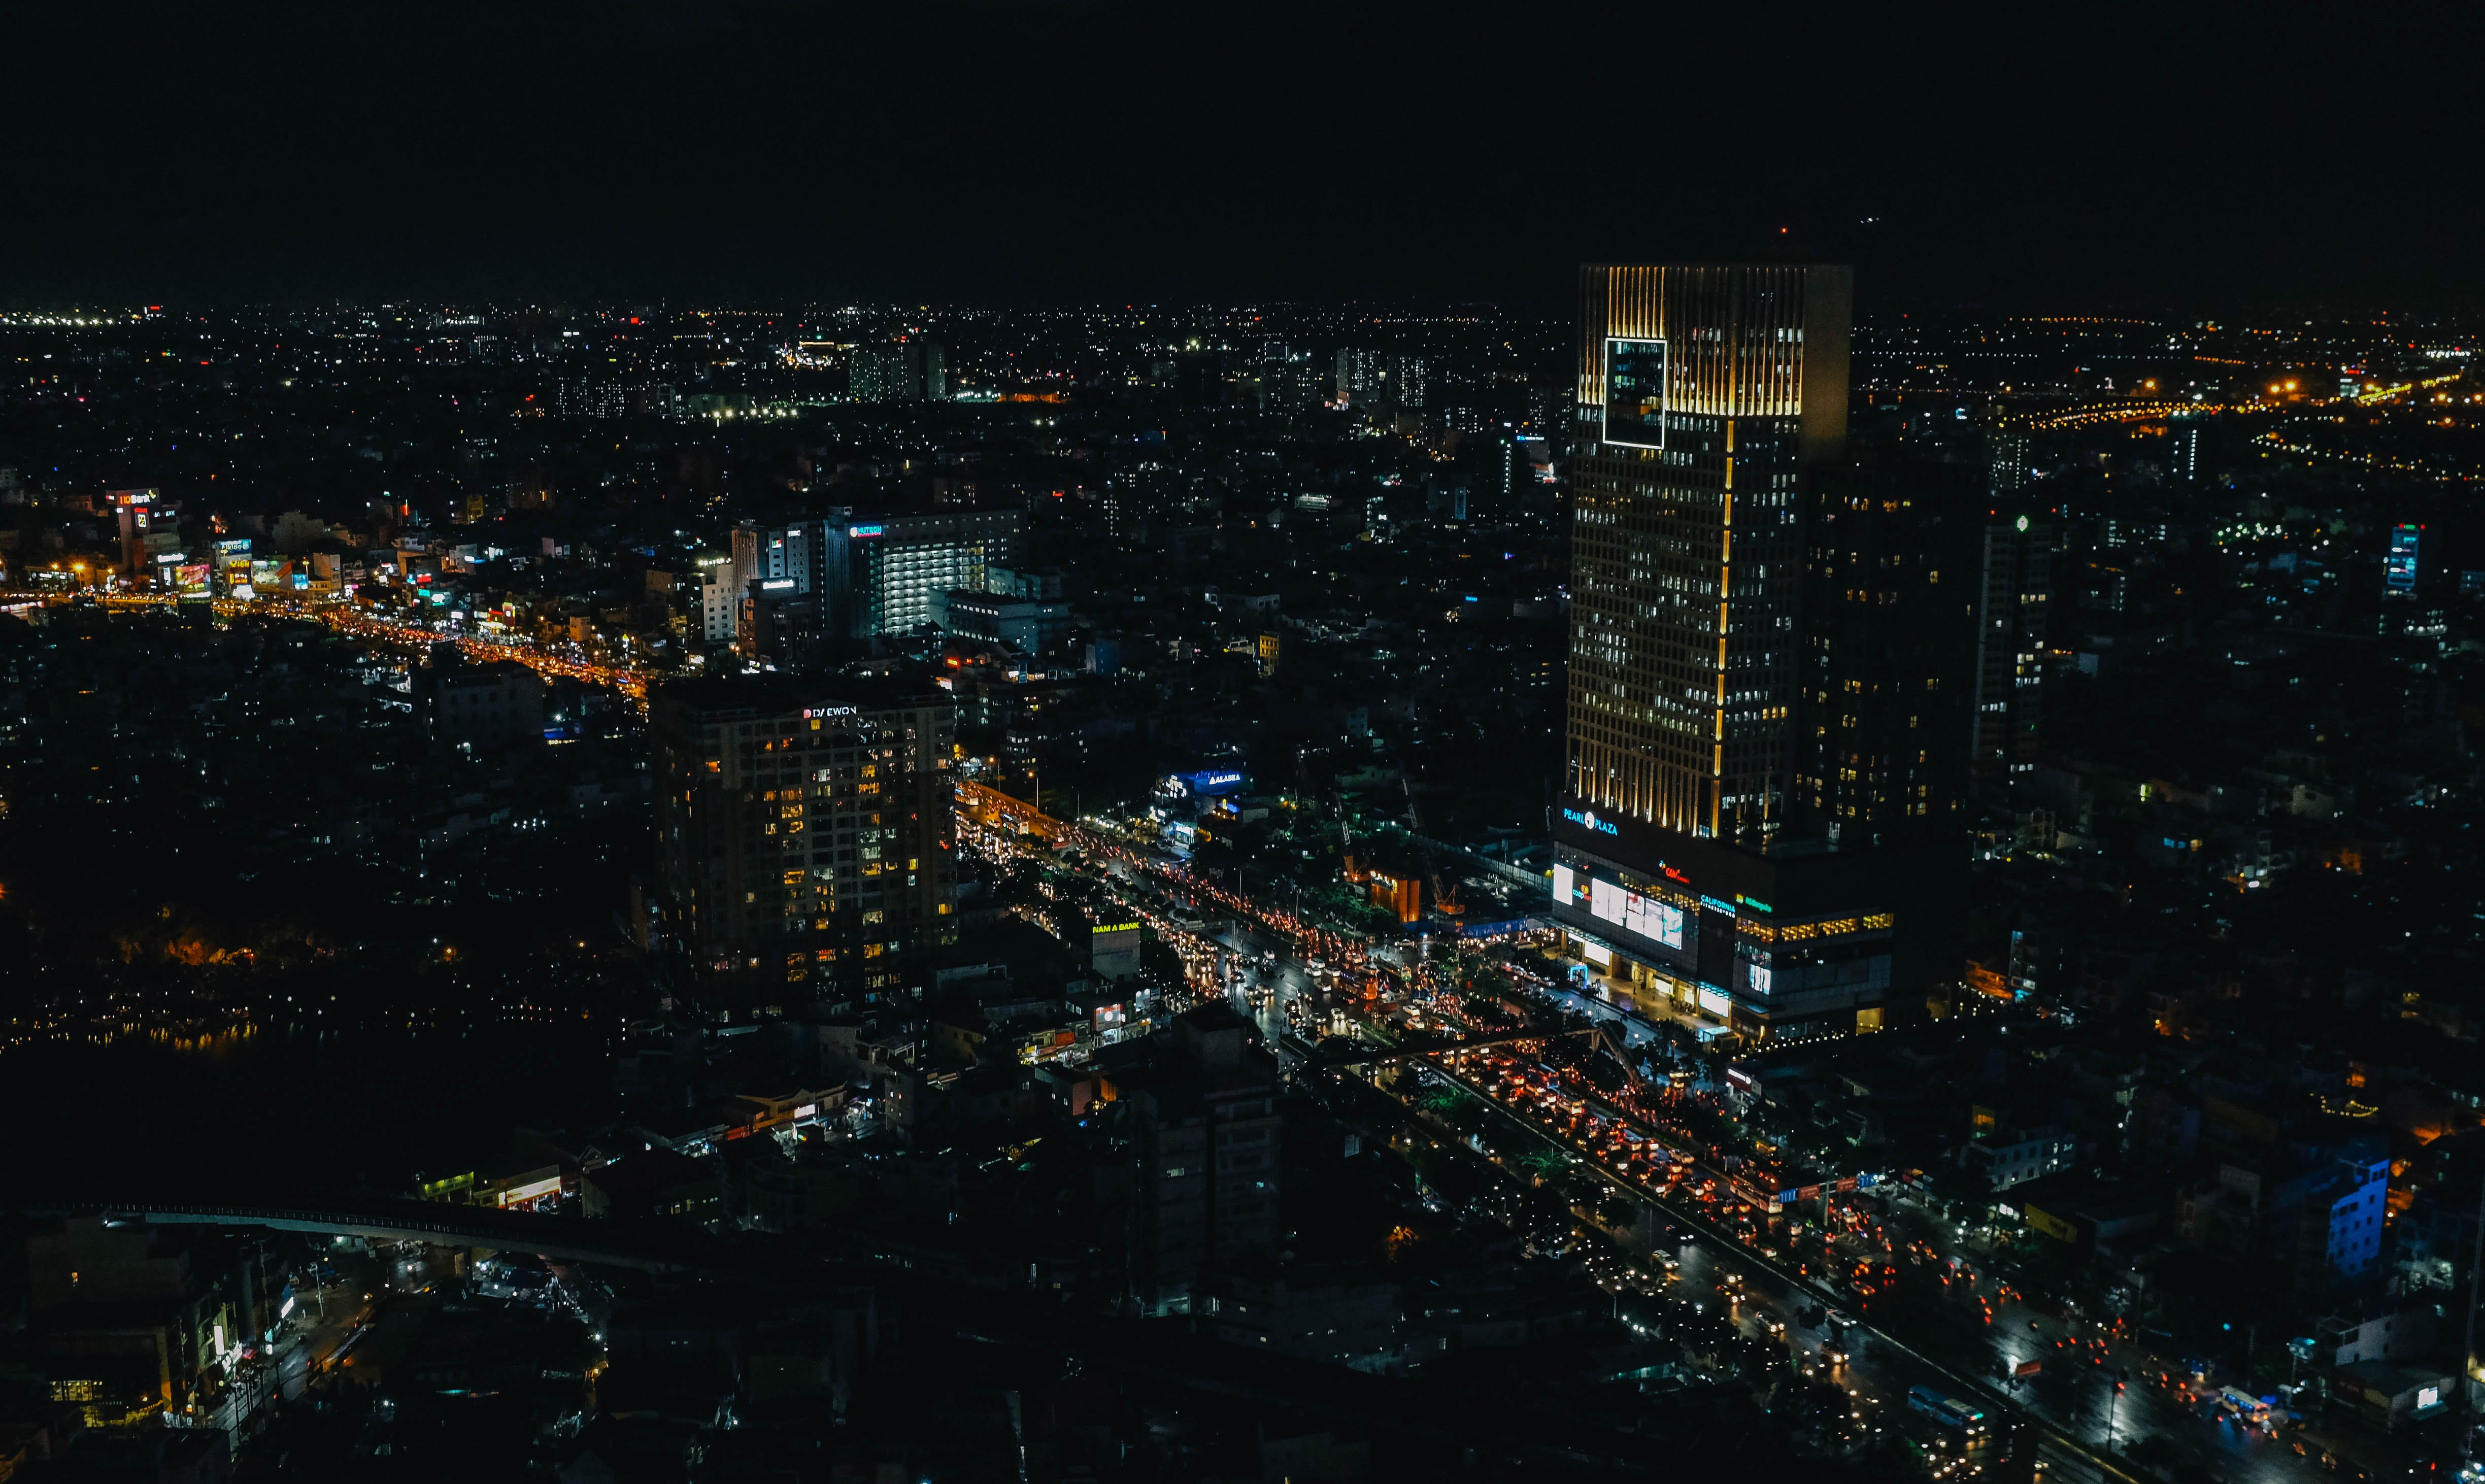 Free stock photo of city, lights, night, buildings